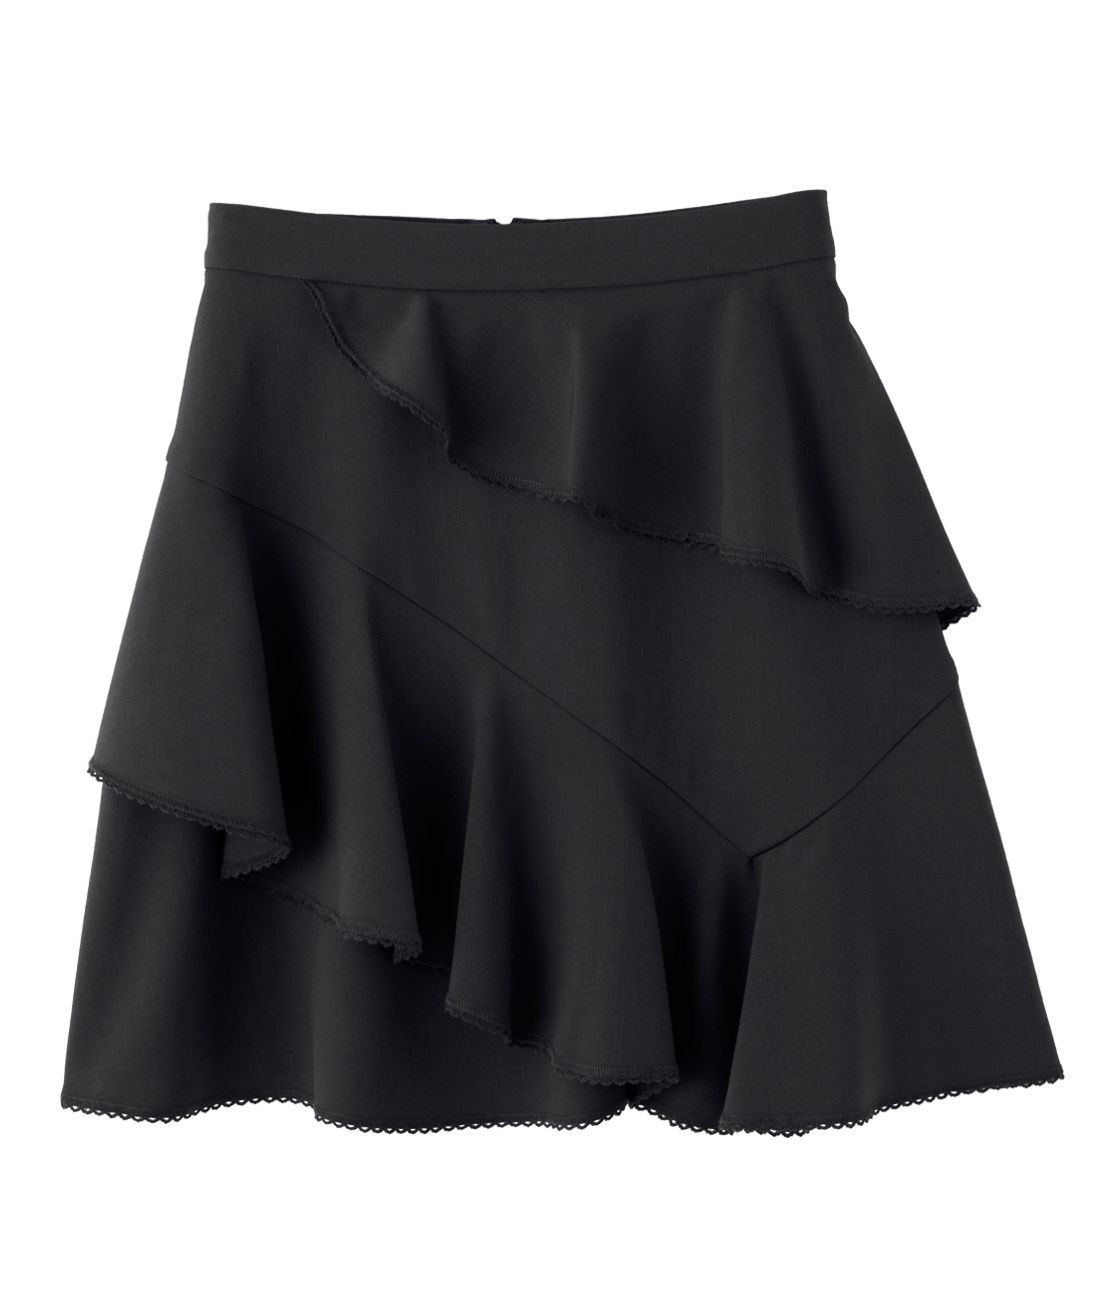 Pretend Lee mini skirt